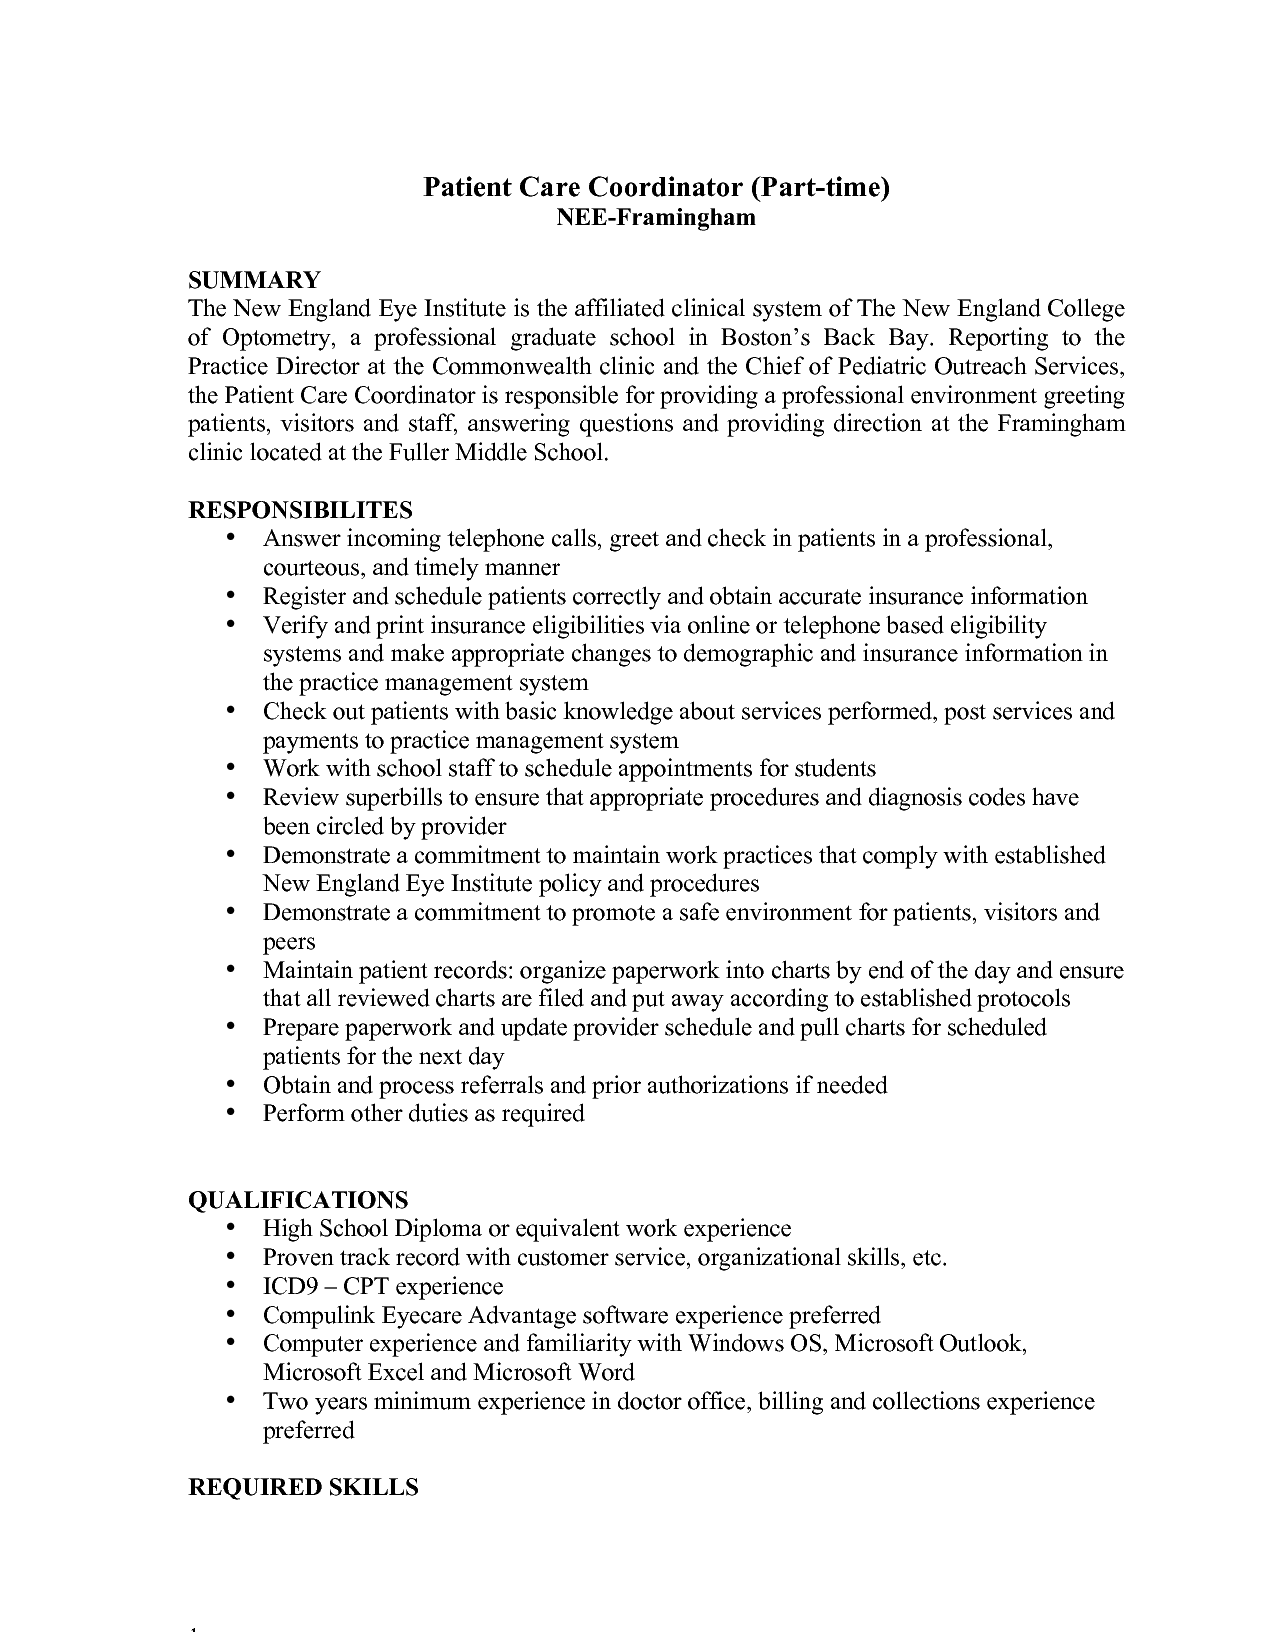 patient care coordinator resume summary and responsibilities - Coordinator Resume